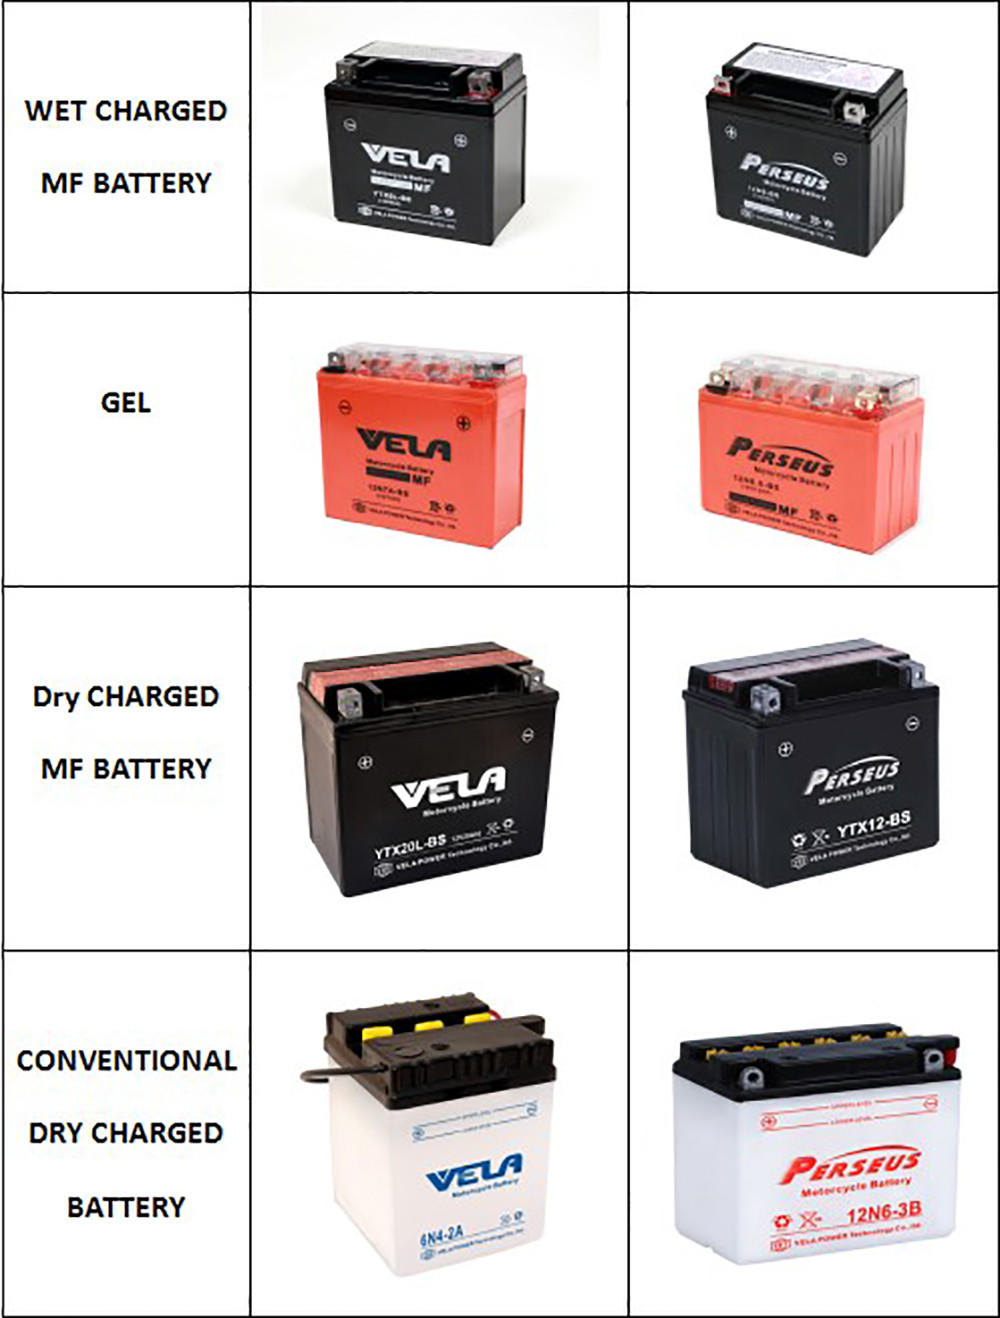 VELA dry cell motorcycle battery widely used for motorcyles-2